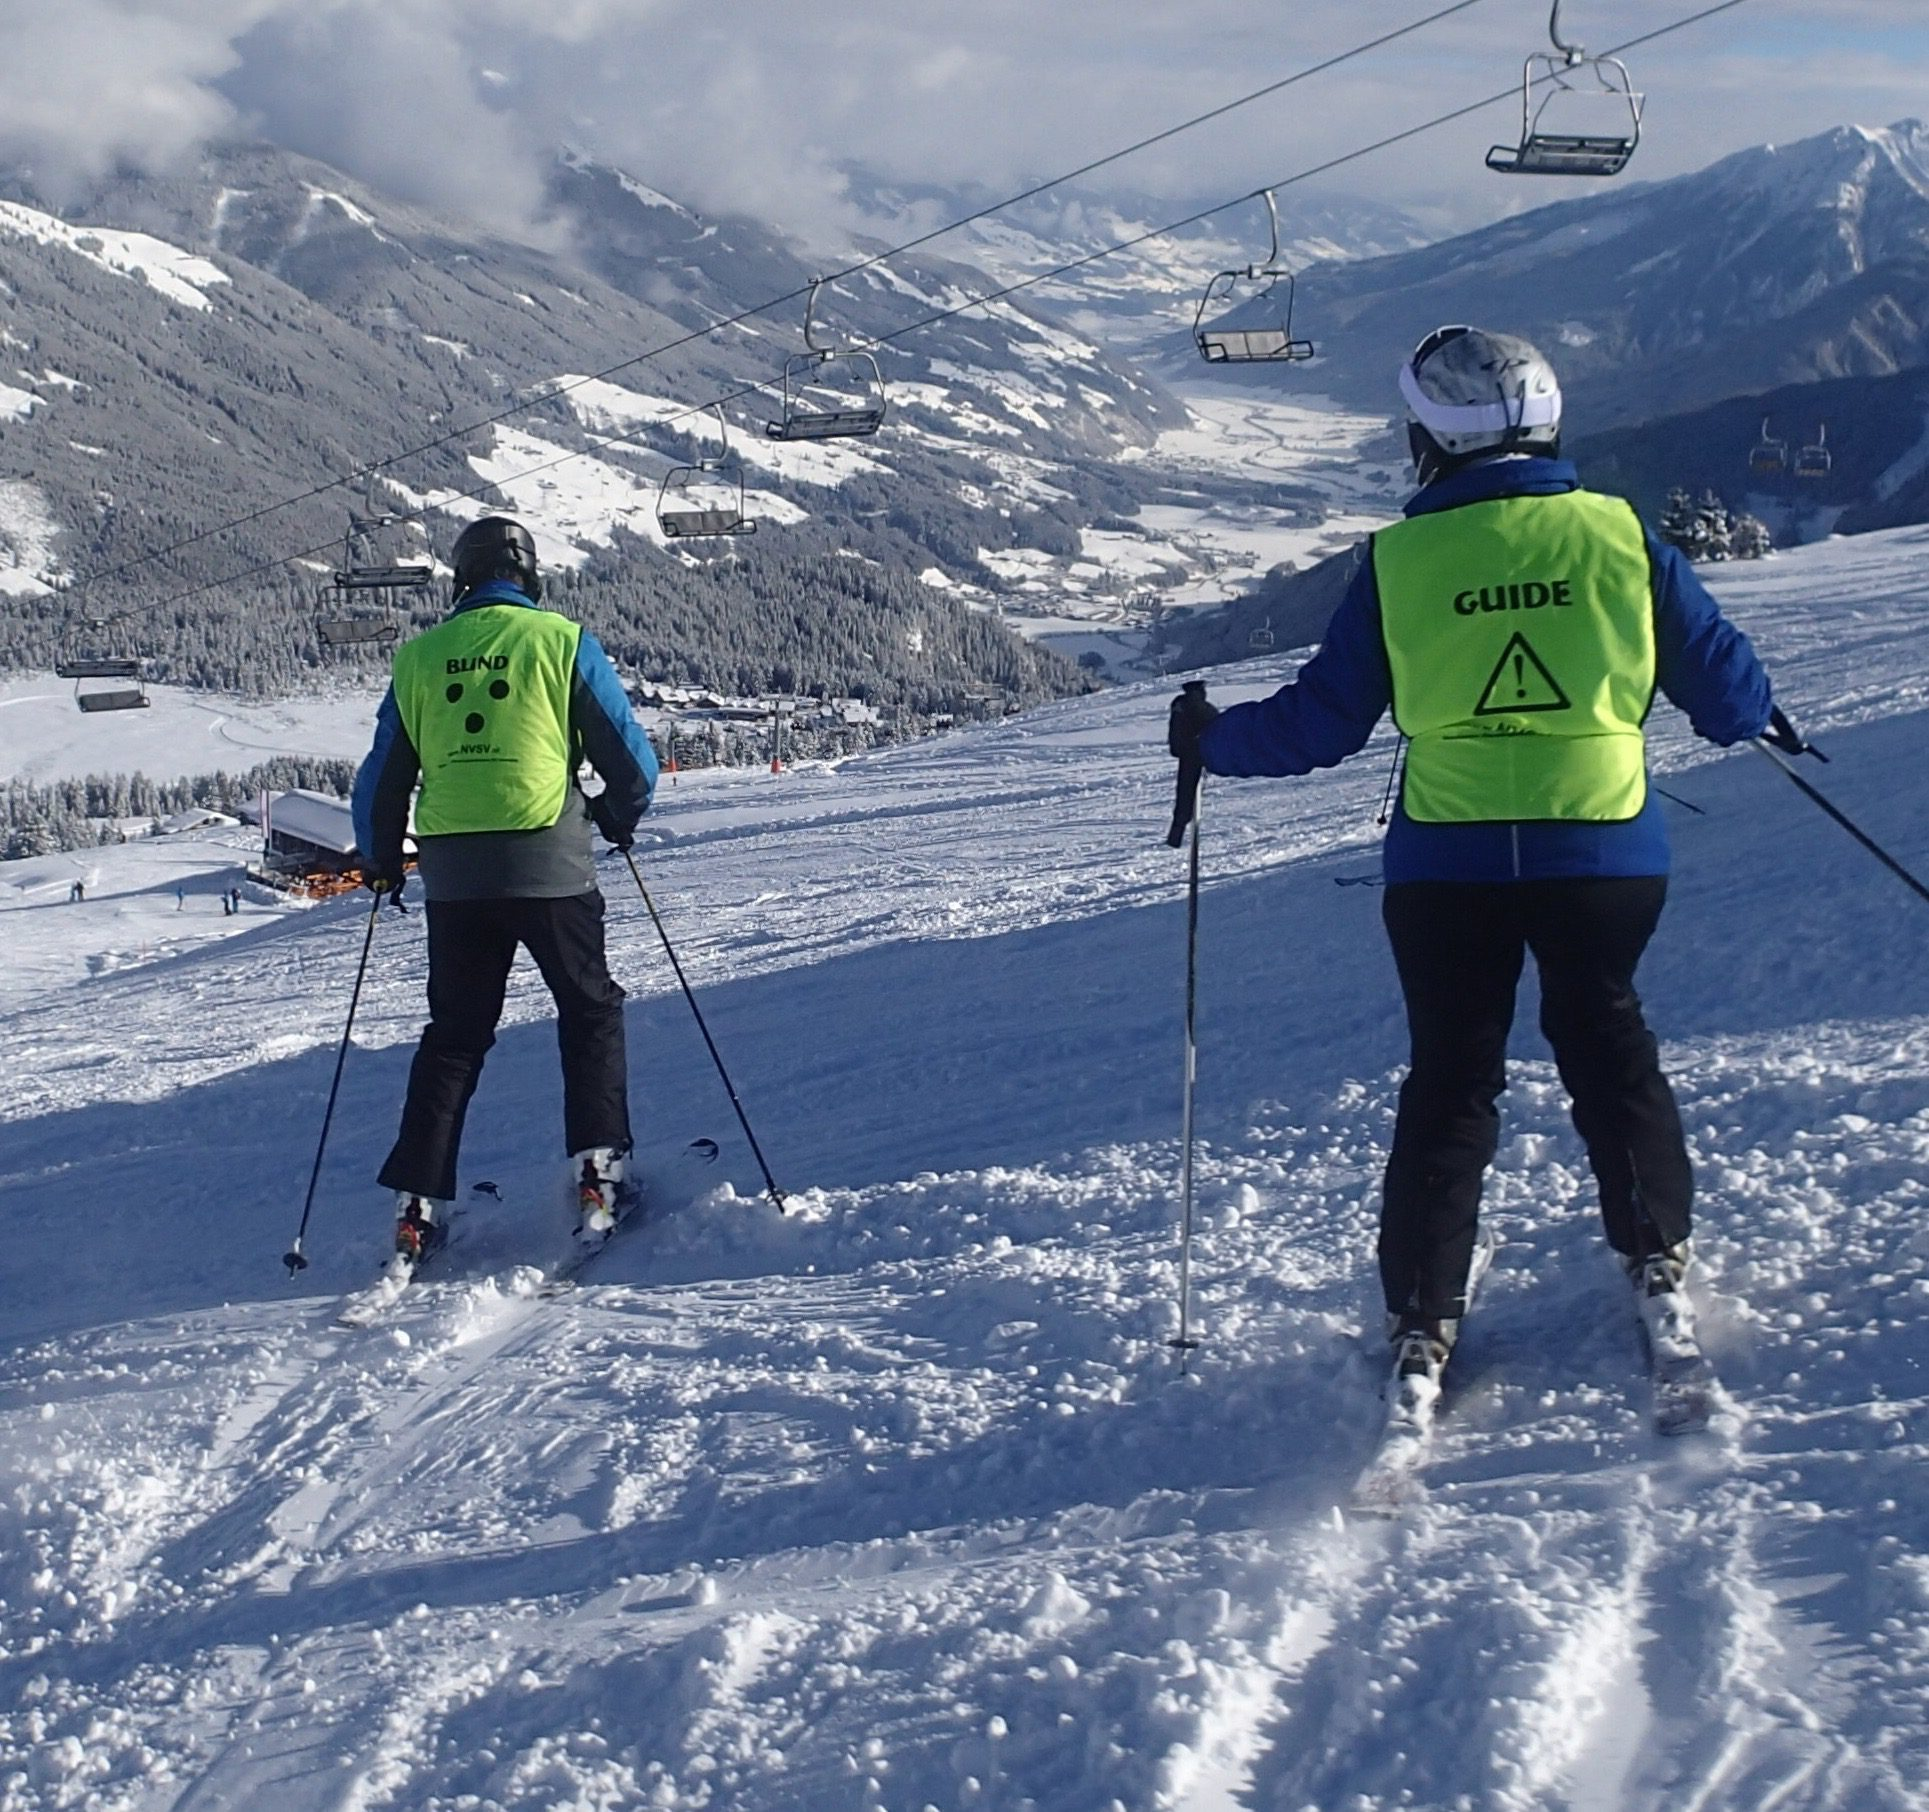 /wireless-communication-system-guide-blind-axiwi-snowboarding